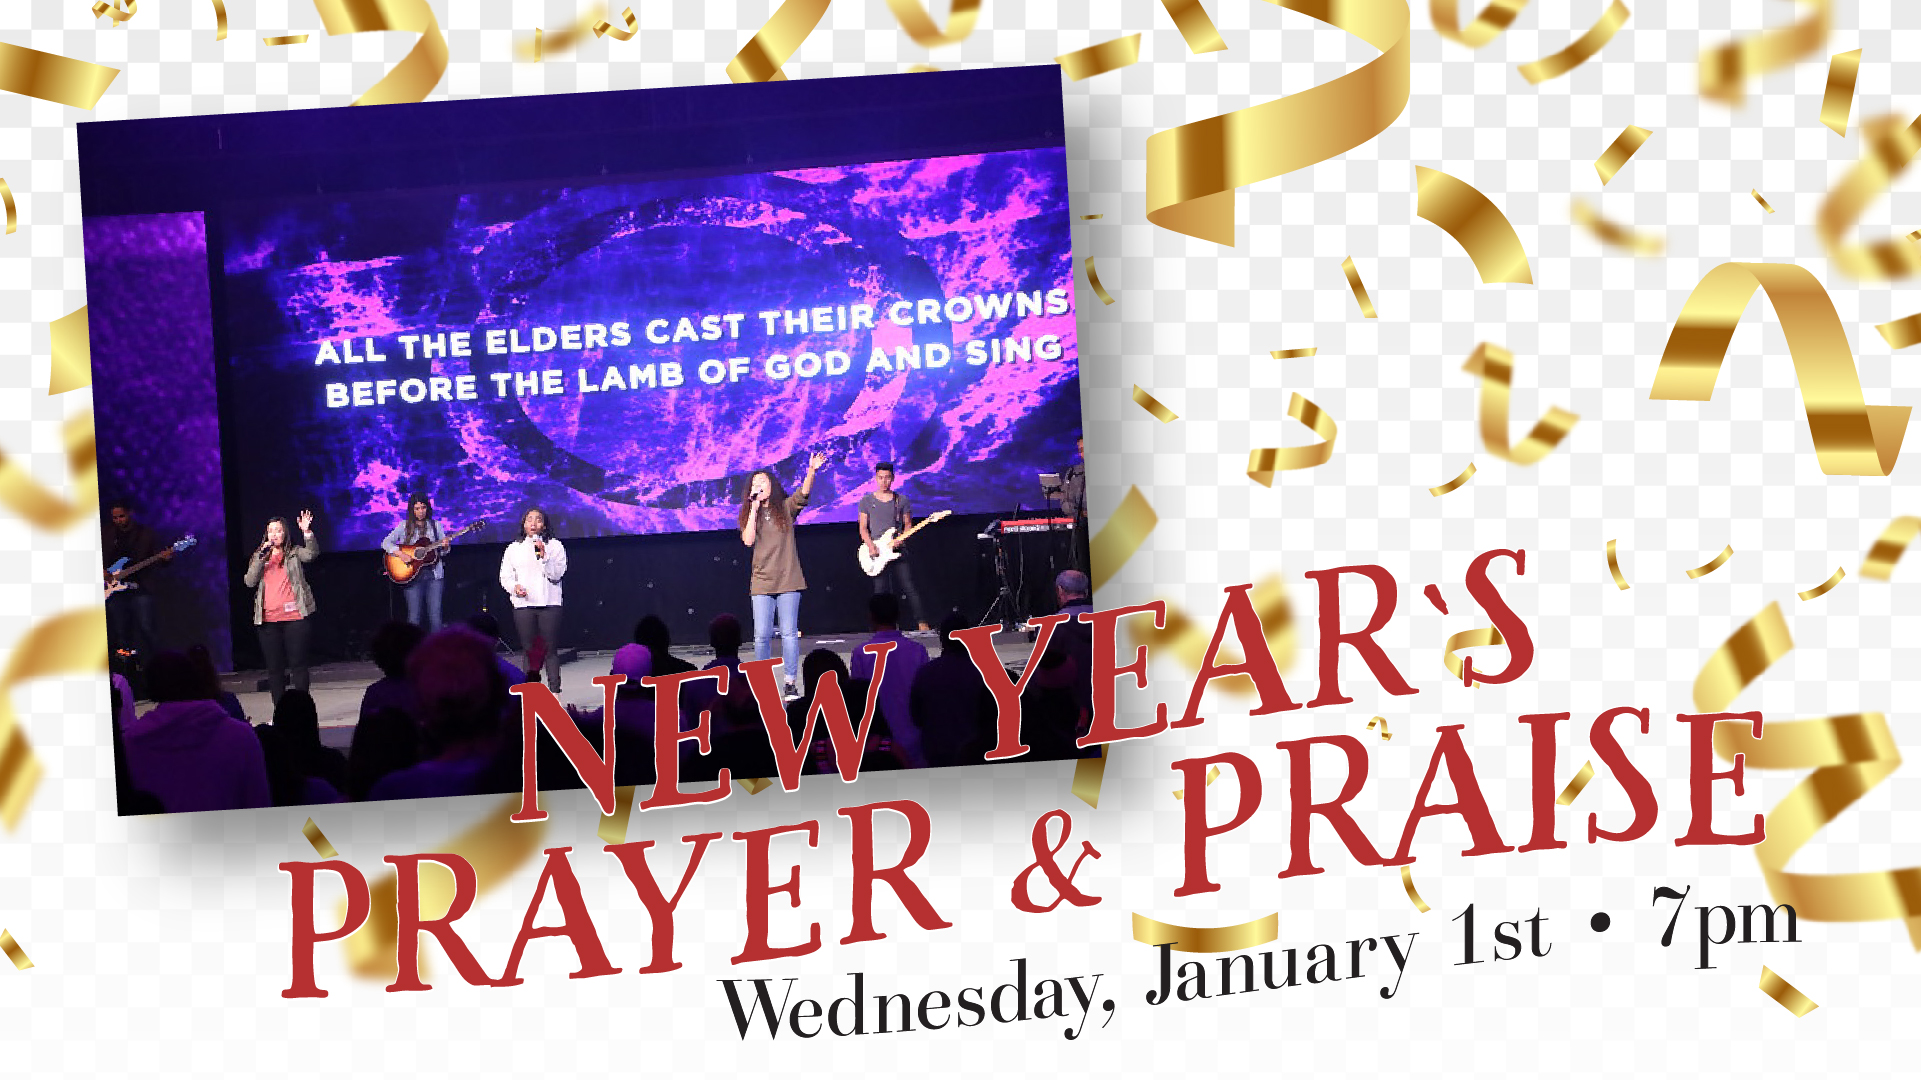 New Year's Prayer & Praise 2019